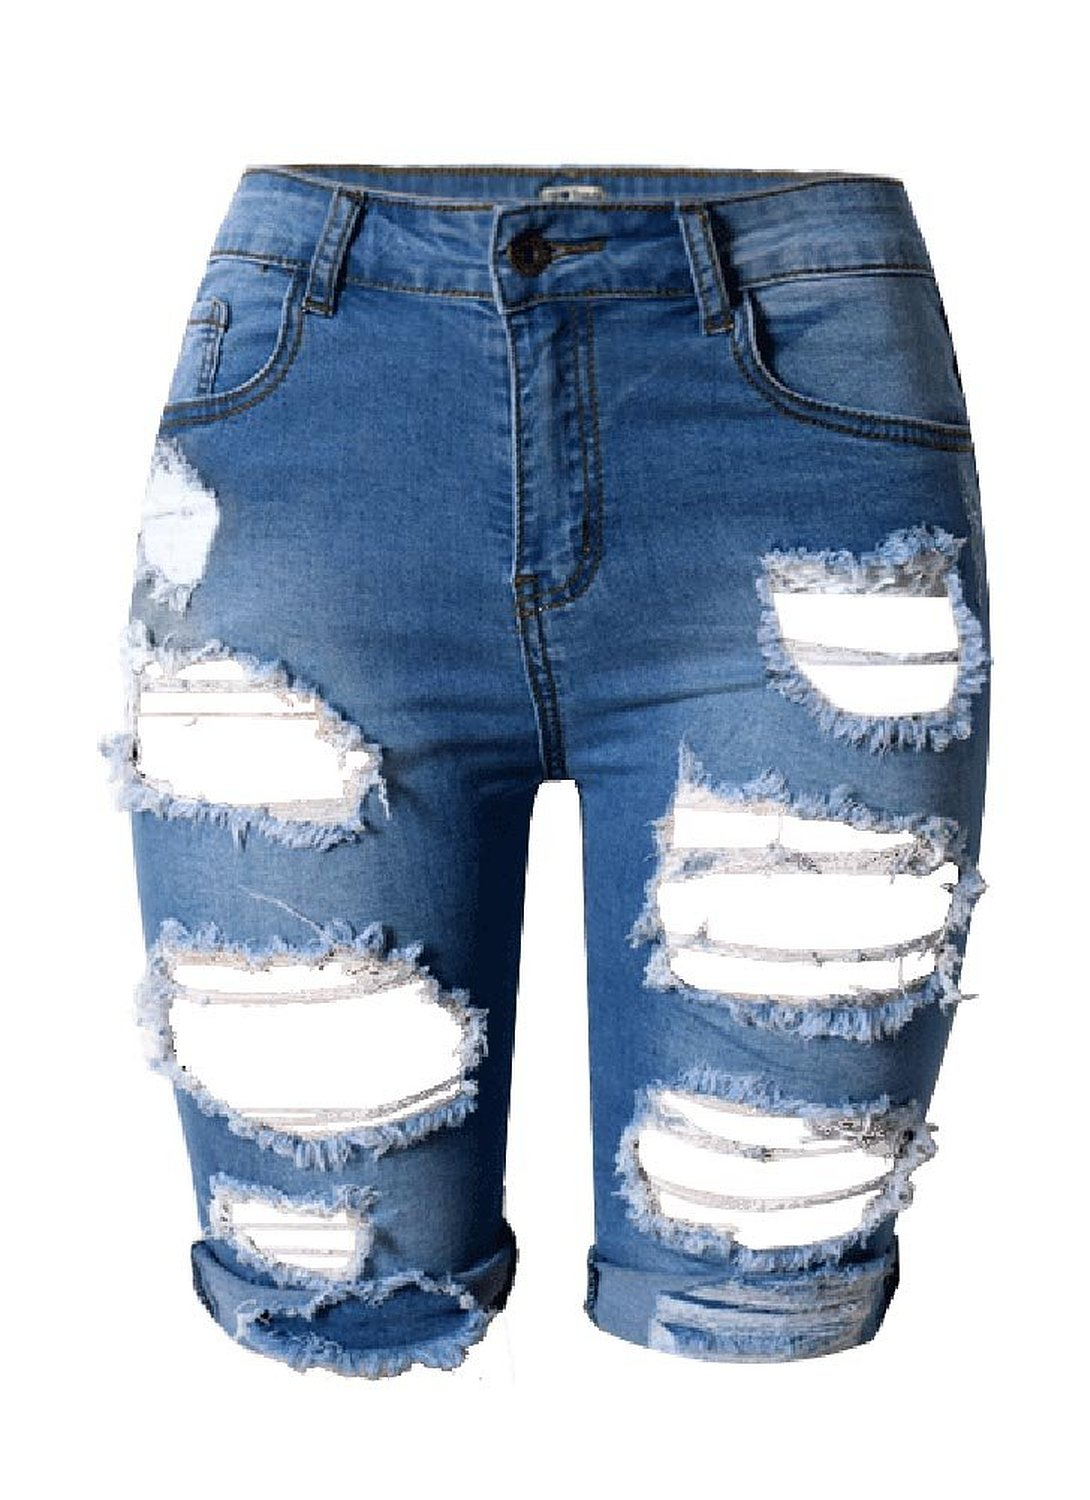 4ae22a411b1c87 Ybenlow Womens High Waist Ripped Hole Washed Distressed Short Jeans at Amazon  Women's Jeans store